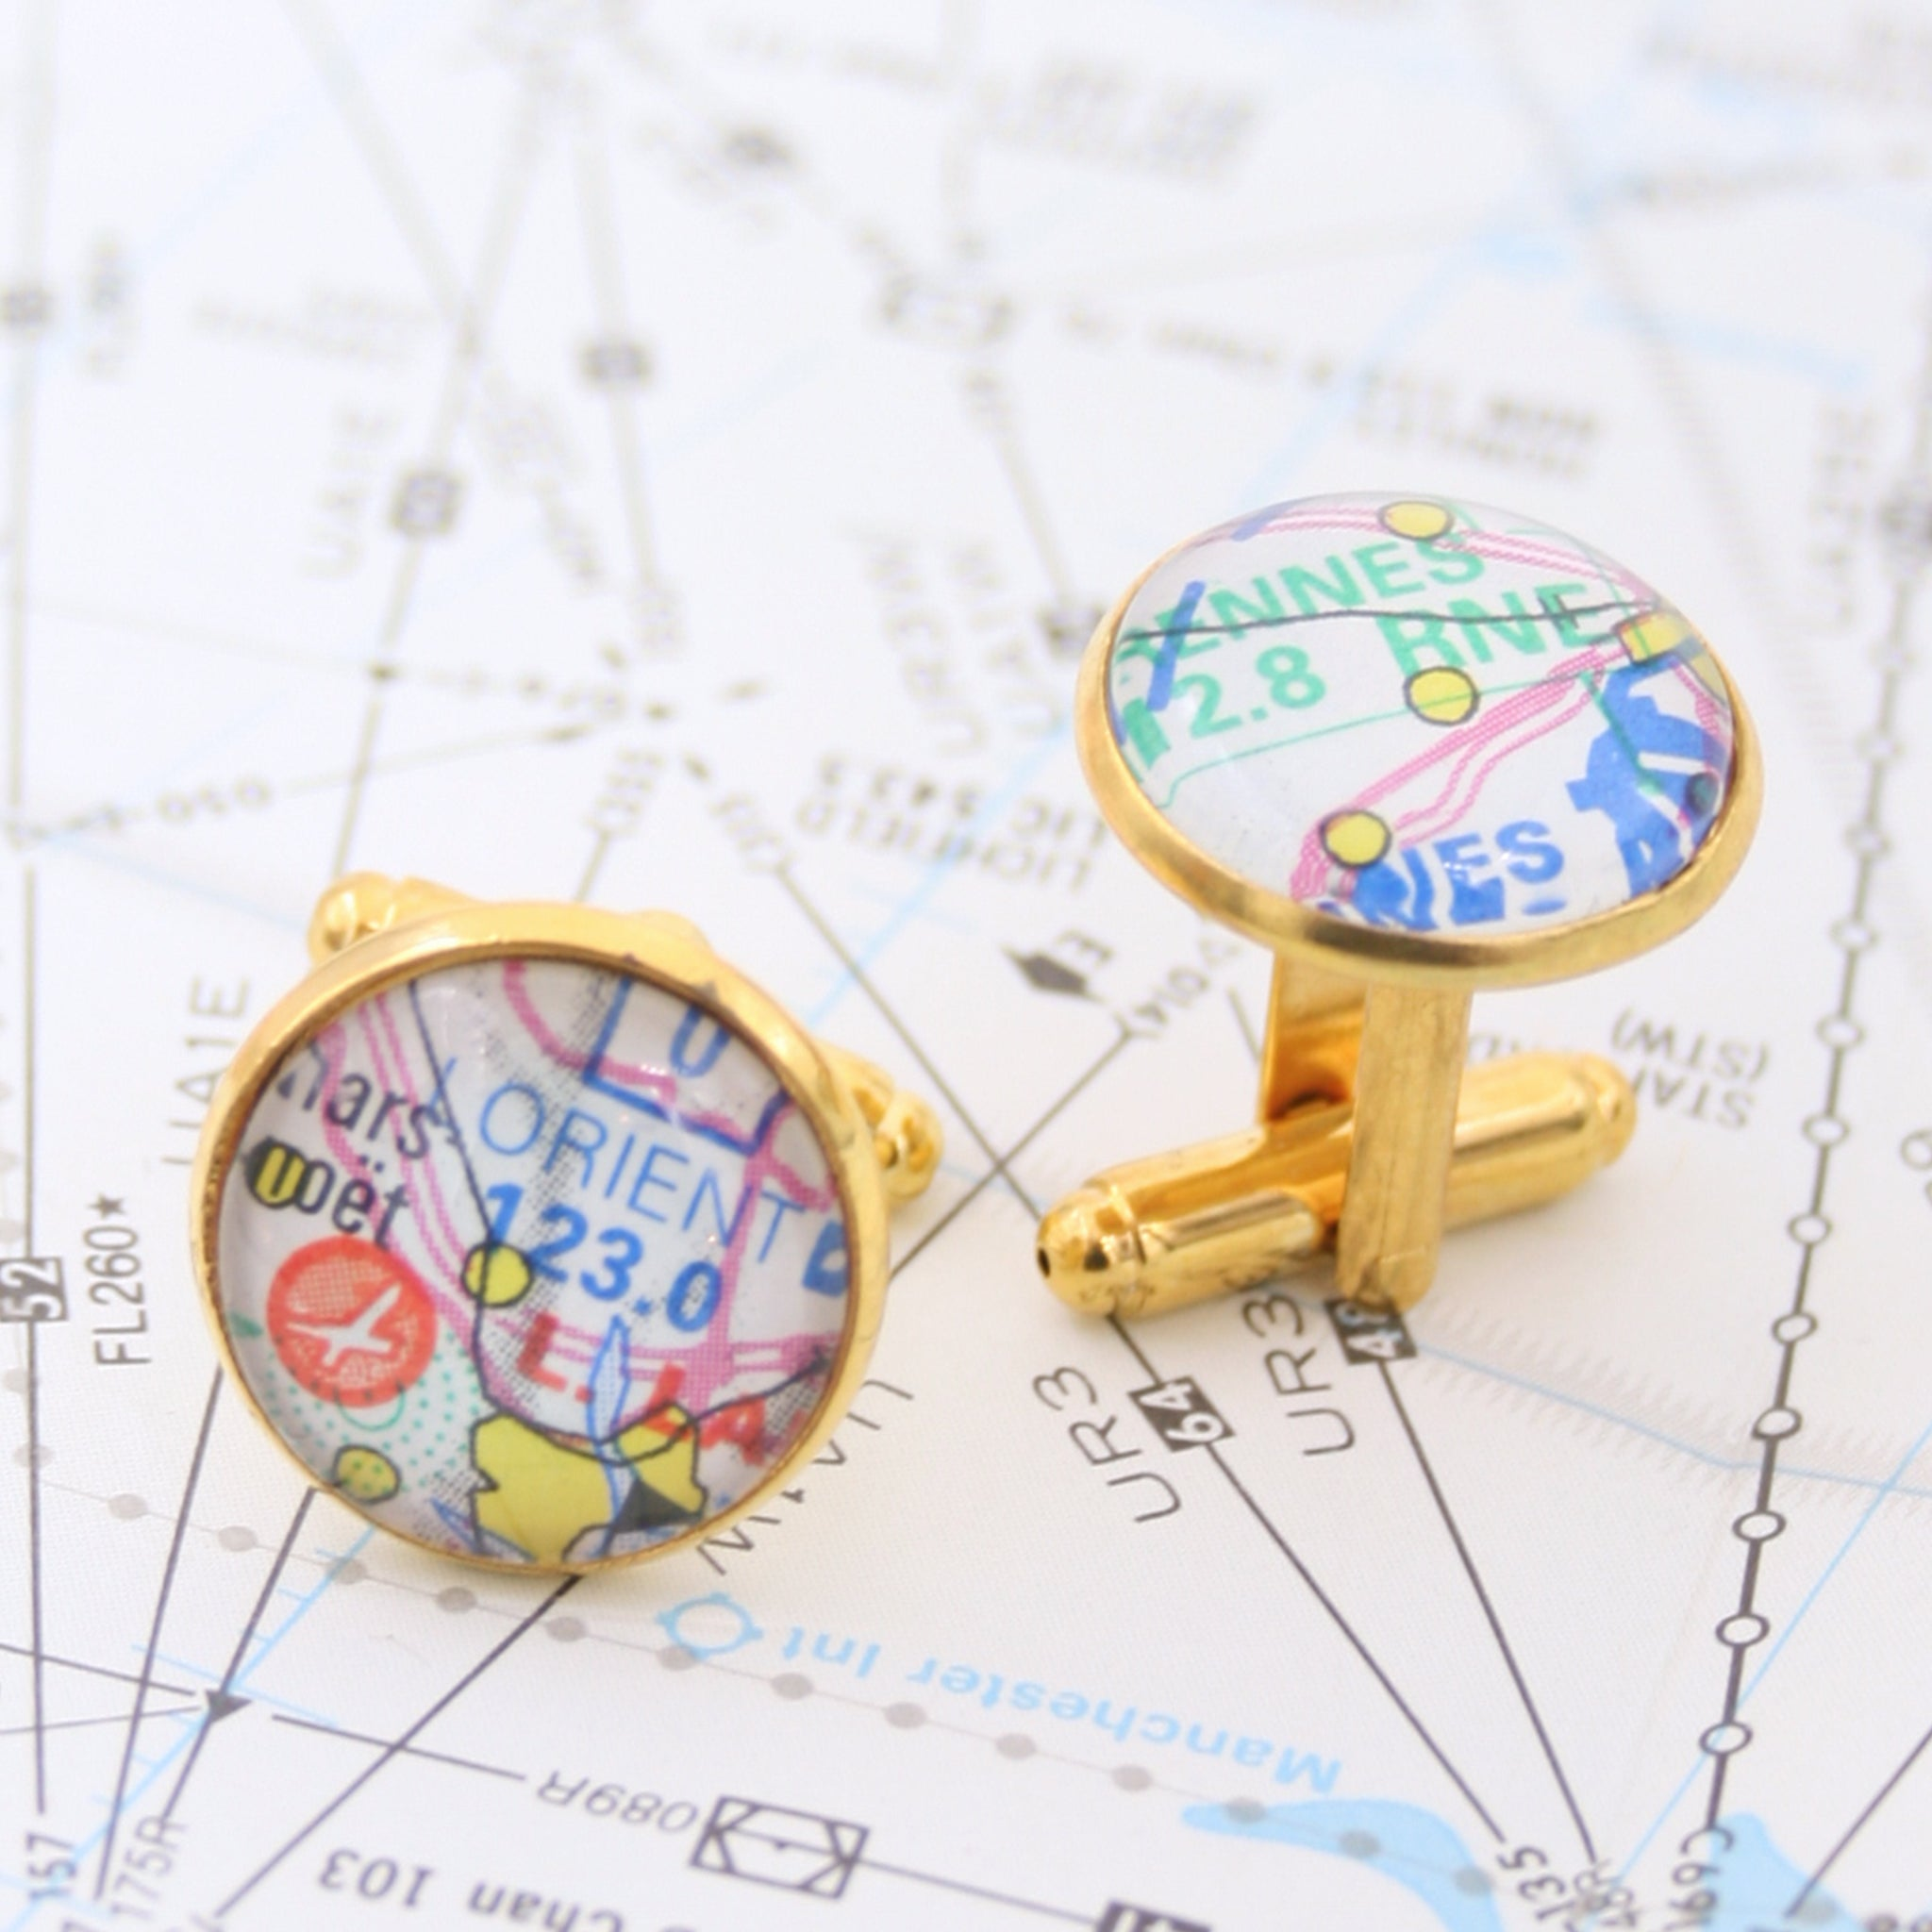 Pilot cufflinks in gold tone made of aeronautical charts